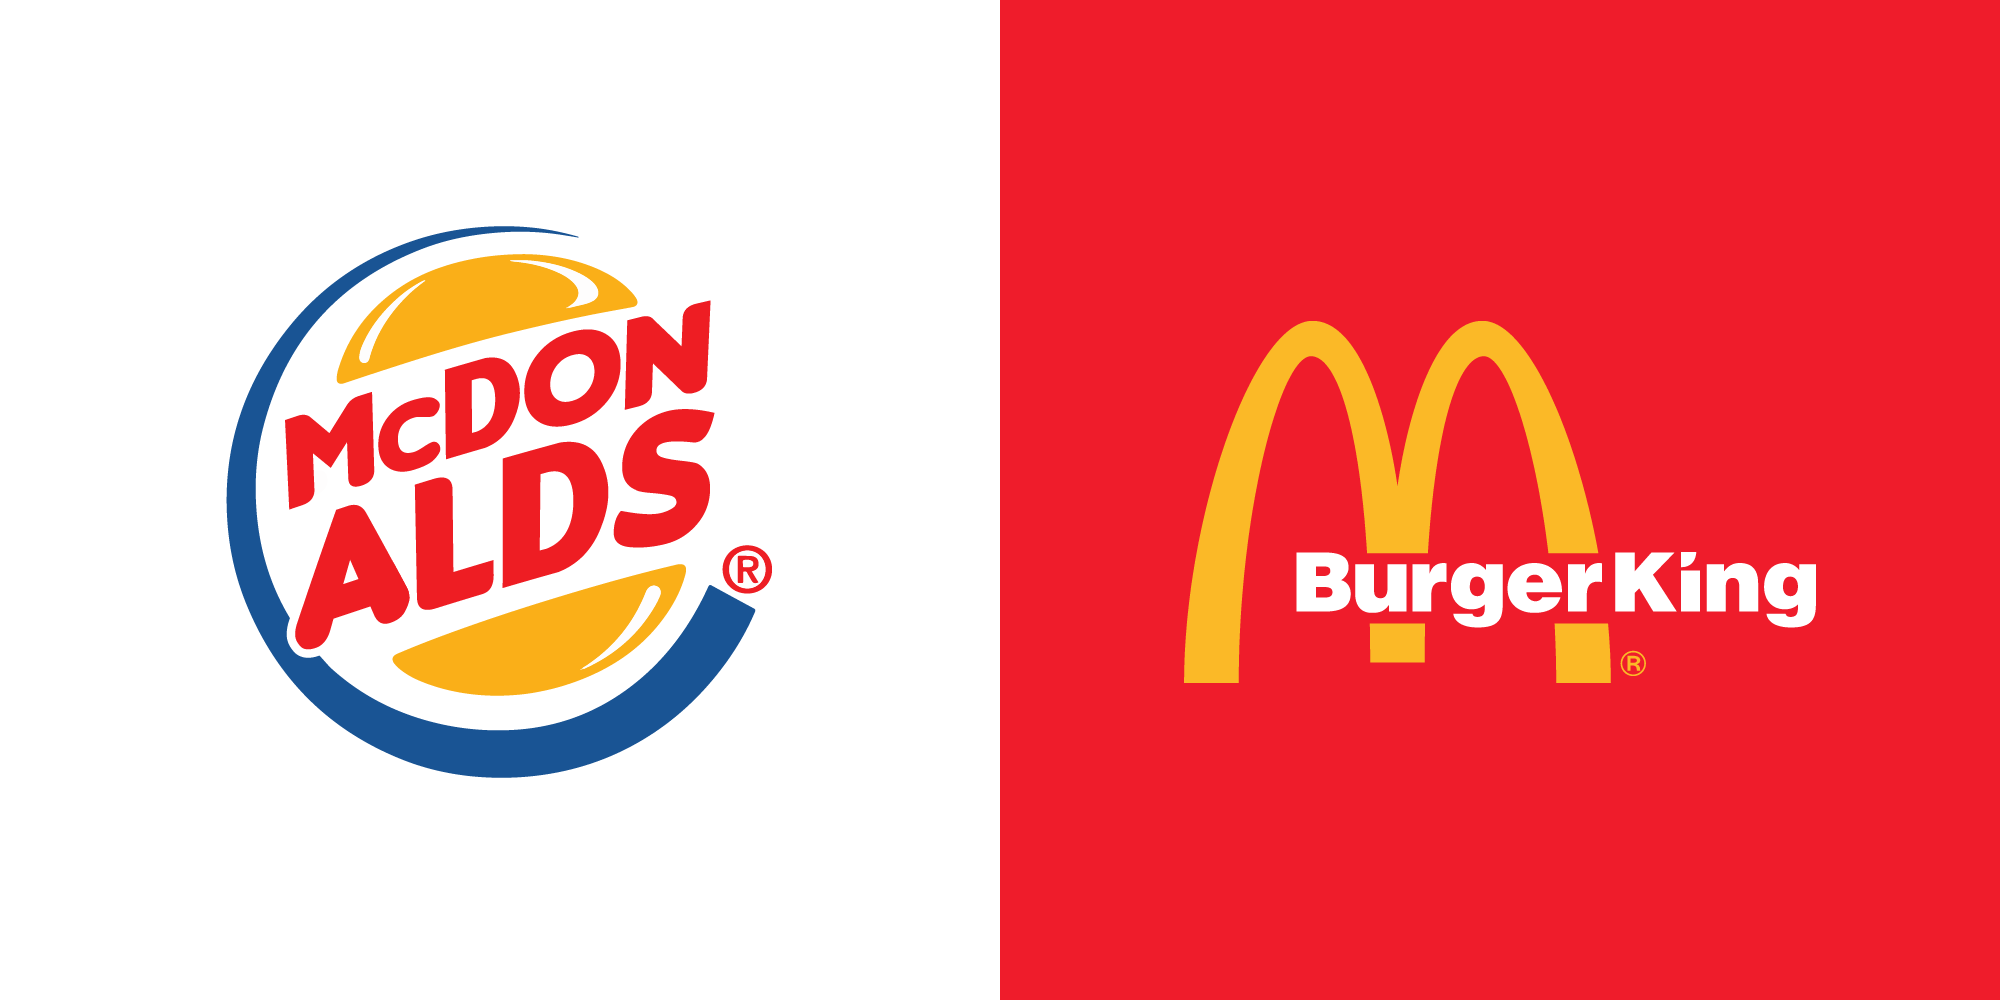 MacDonalds Vs Burger King Logo - CDA